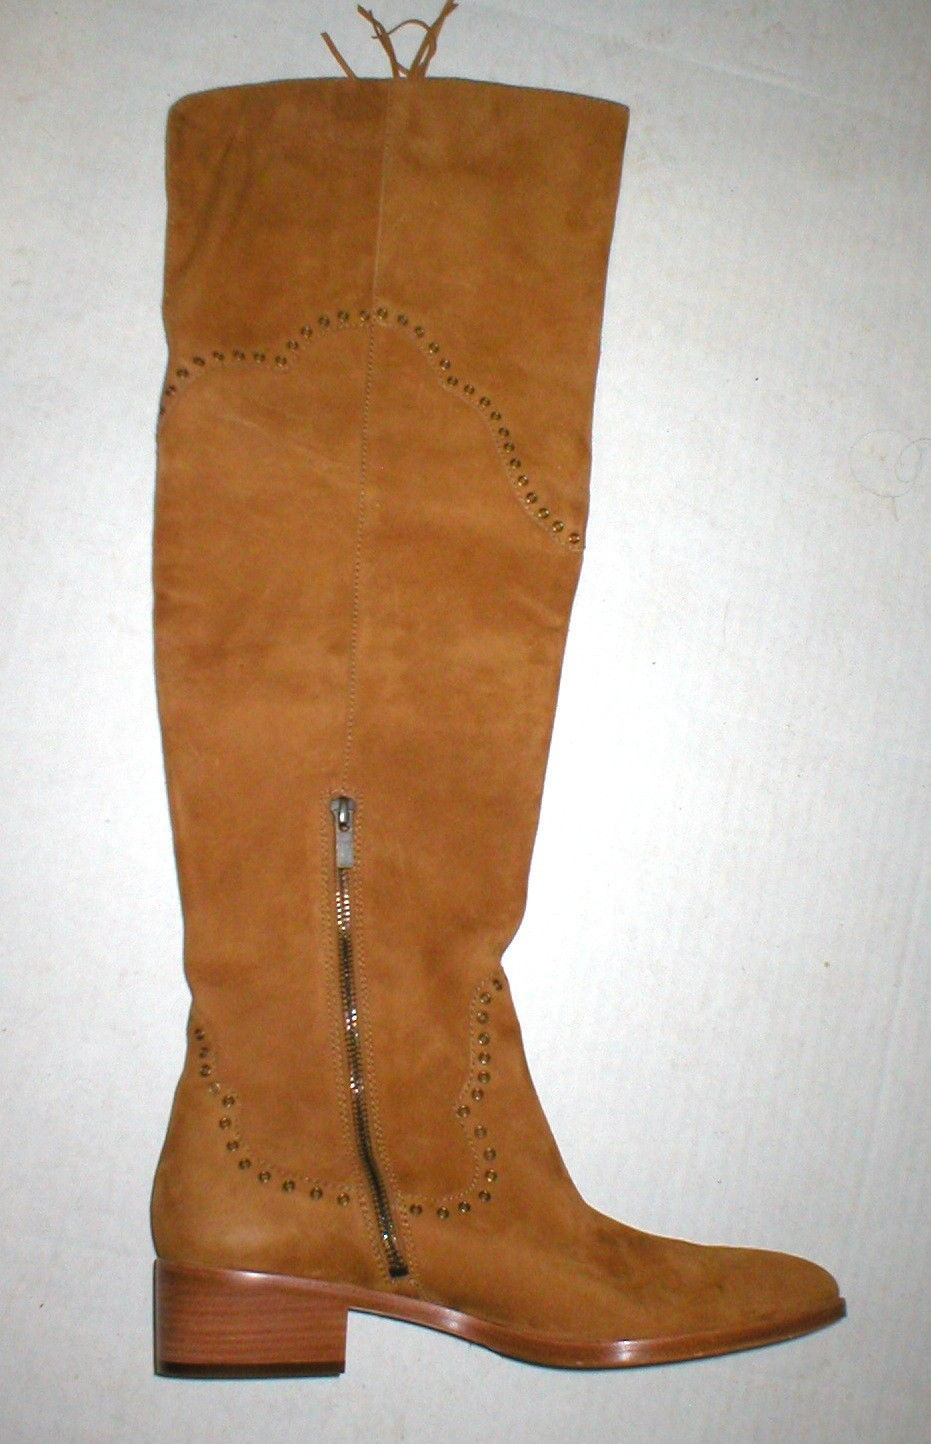 New $578 Womens 9.5 Frye Suede Leather Boots OTK Tall Knee Fringe Ray Camel Tan image 7